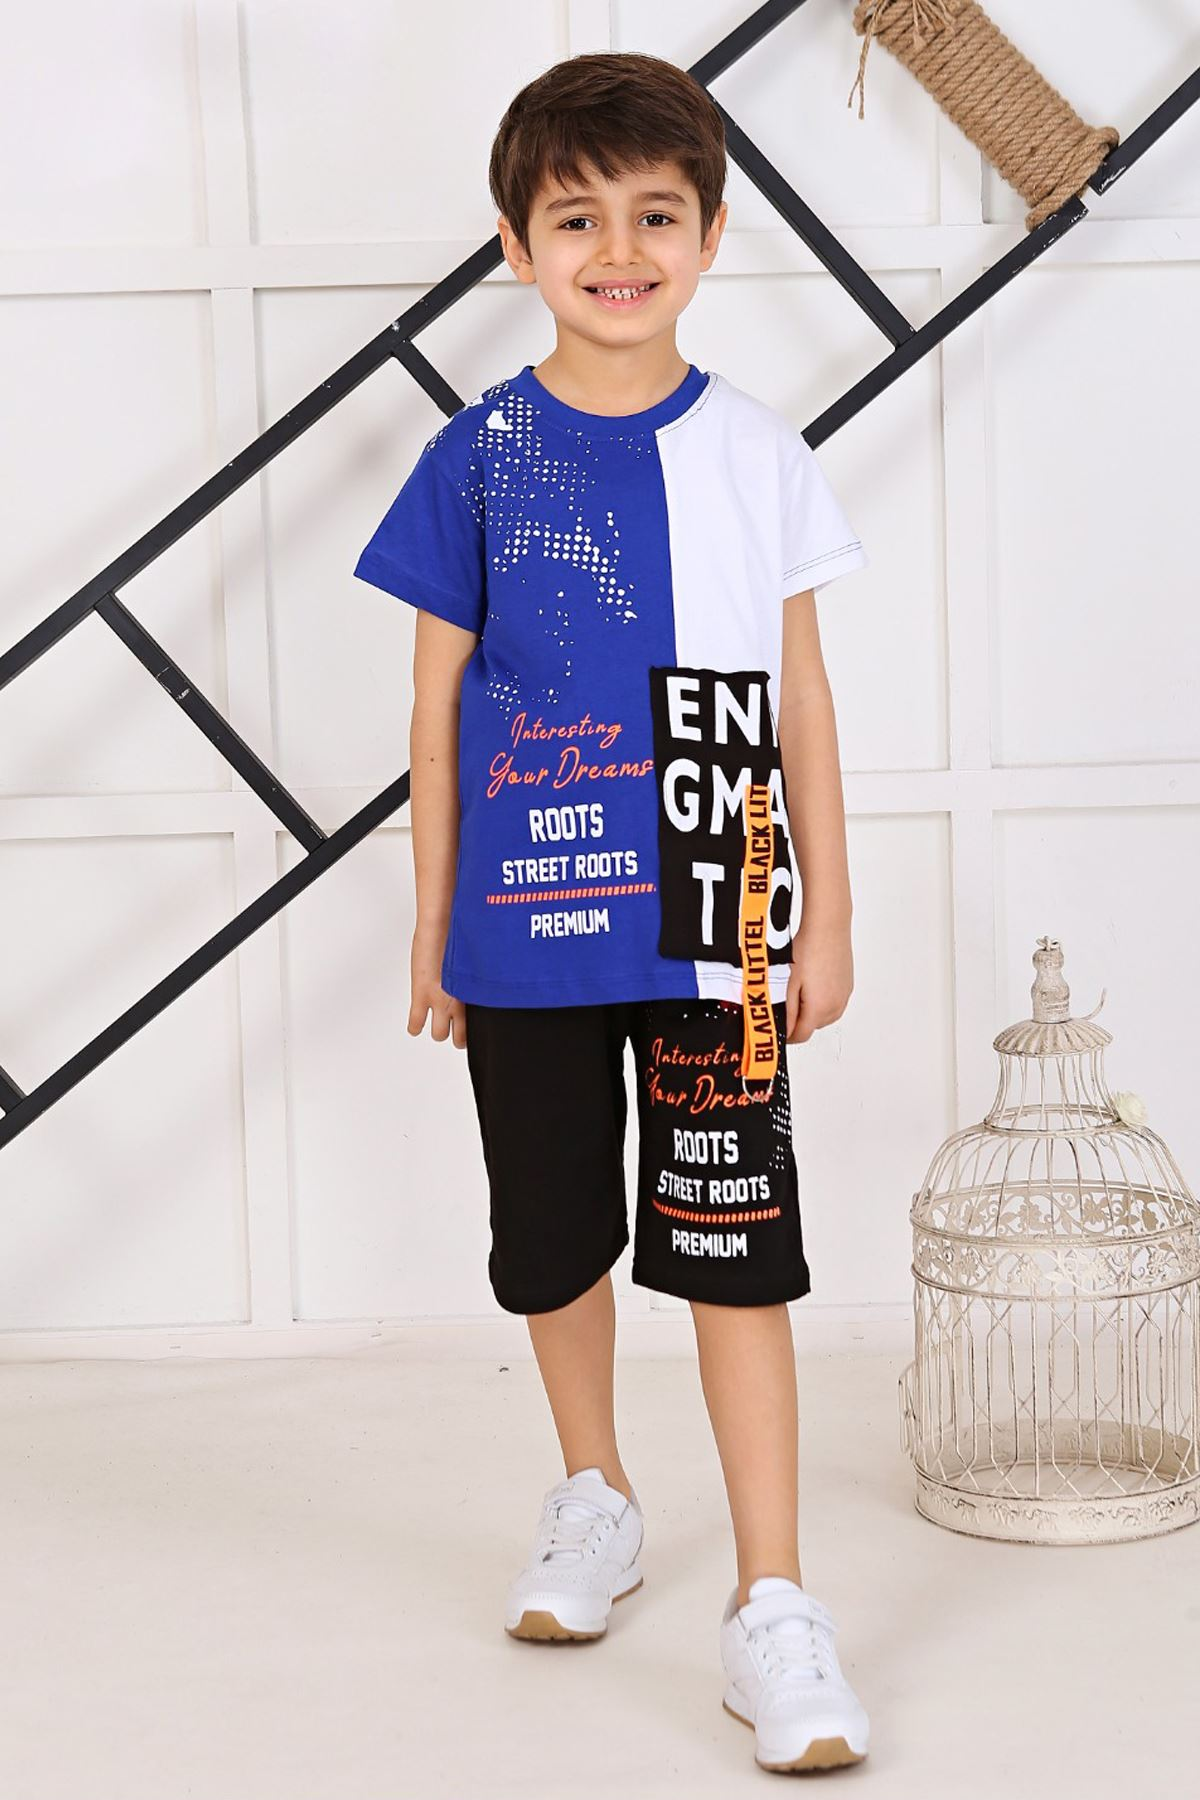 Sax Boy Summer Shorts Set 2 Piece Clothes Shorts T-shirt Casual Casual Holiday Children Boys Cool Cotton Outfits kids Clothing